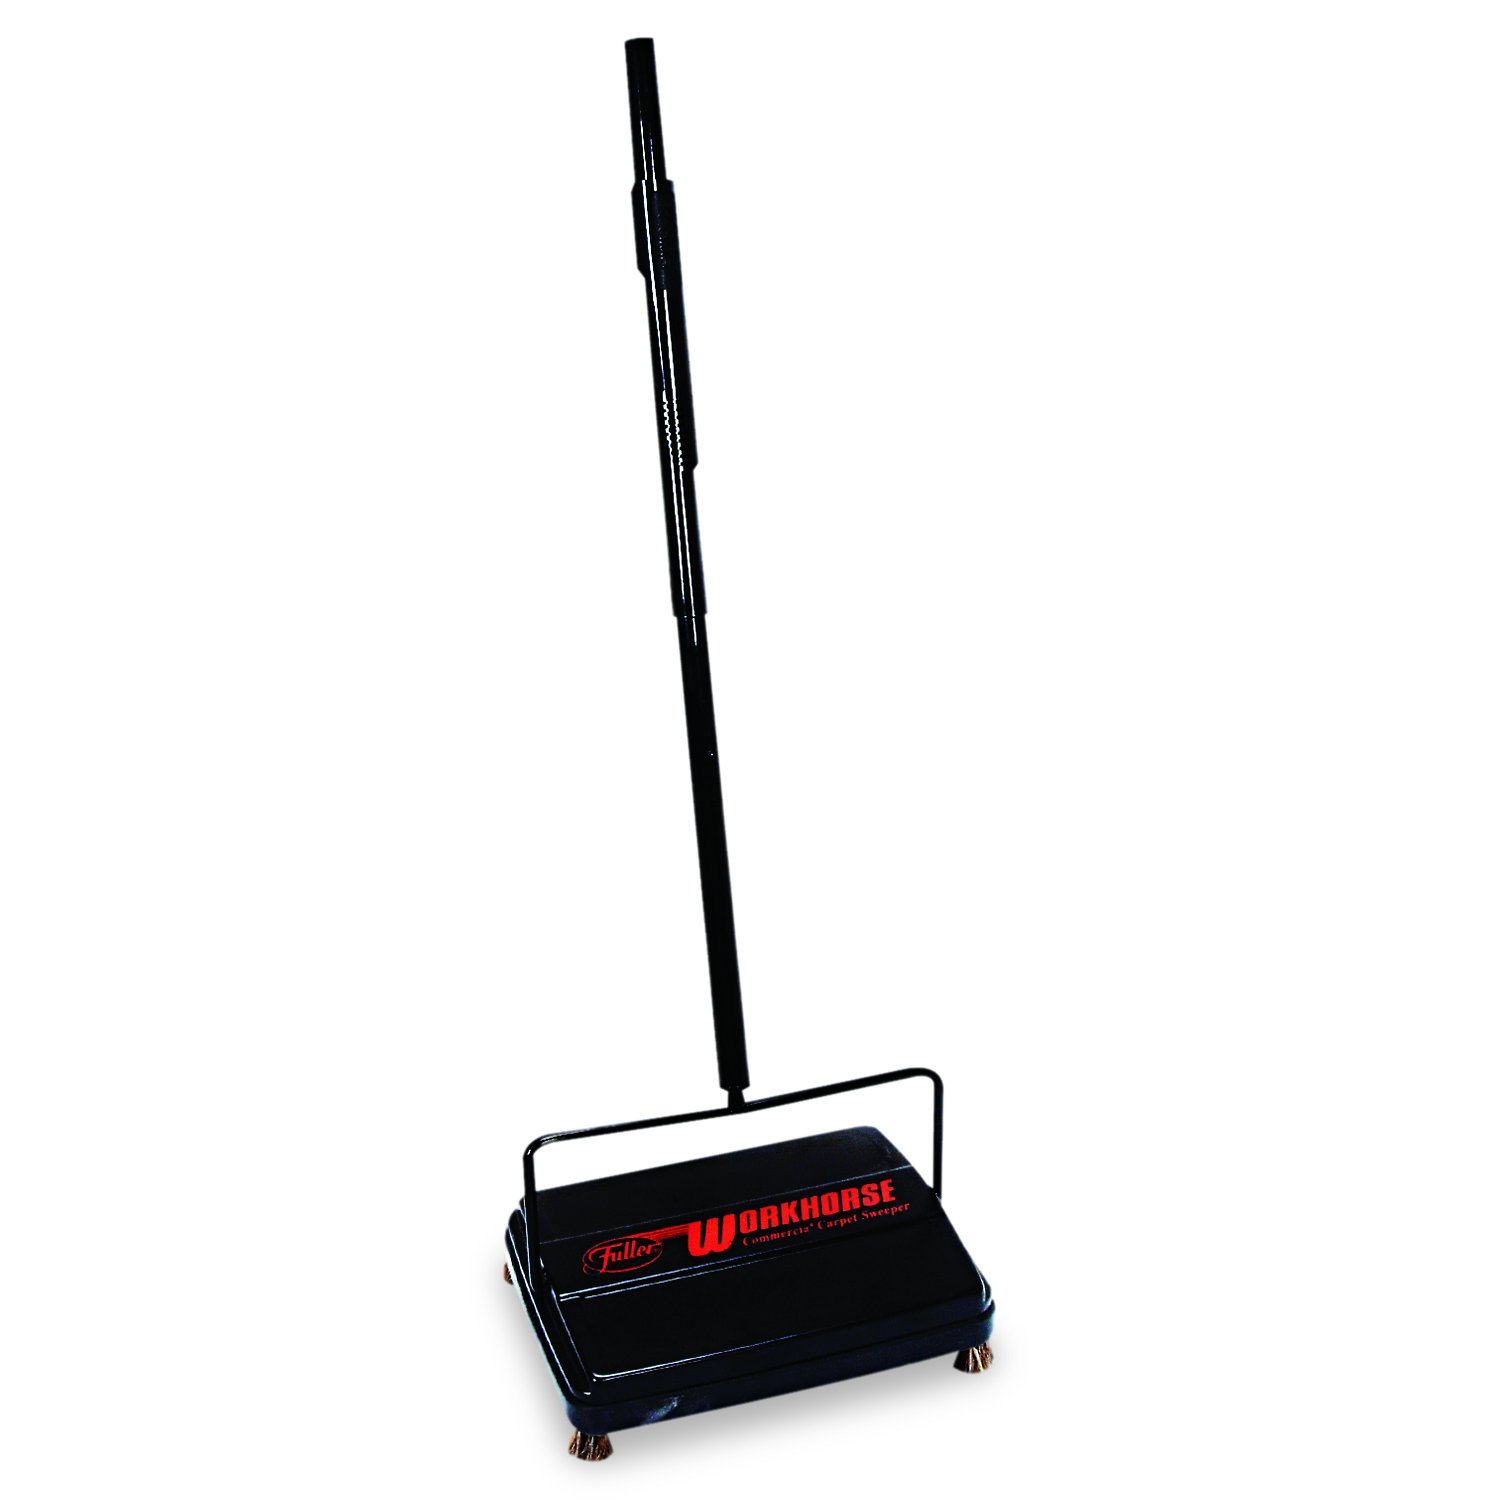 Franklin Cleaning Technology FRK 39357 Workhorse Carpet Sweeper, 46'', Black